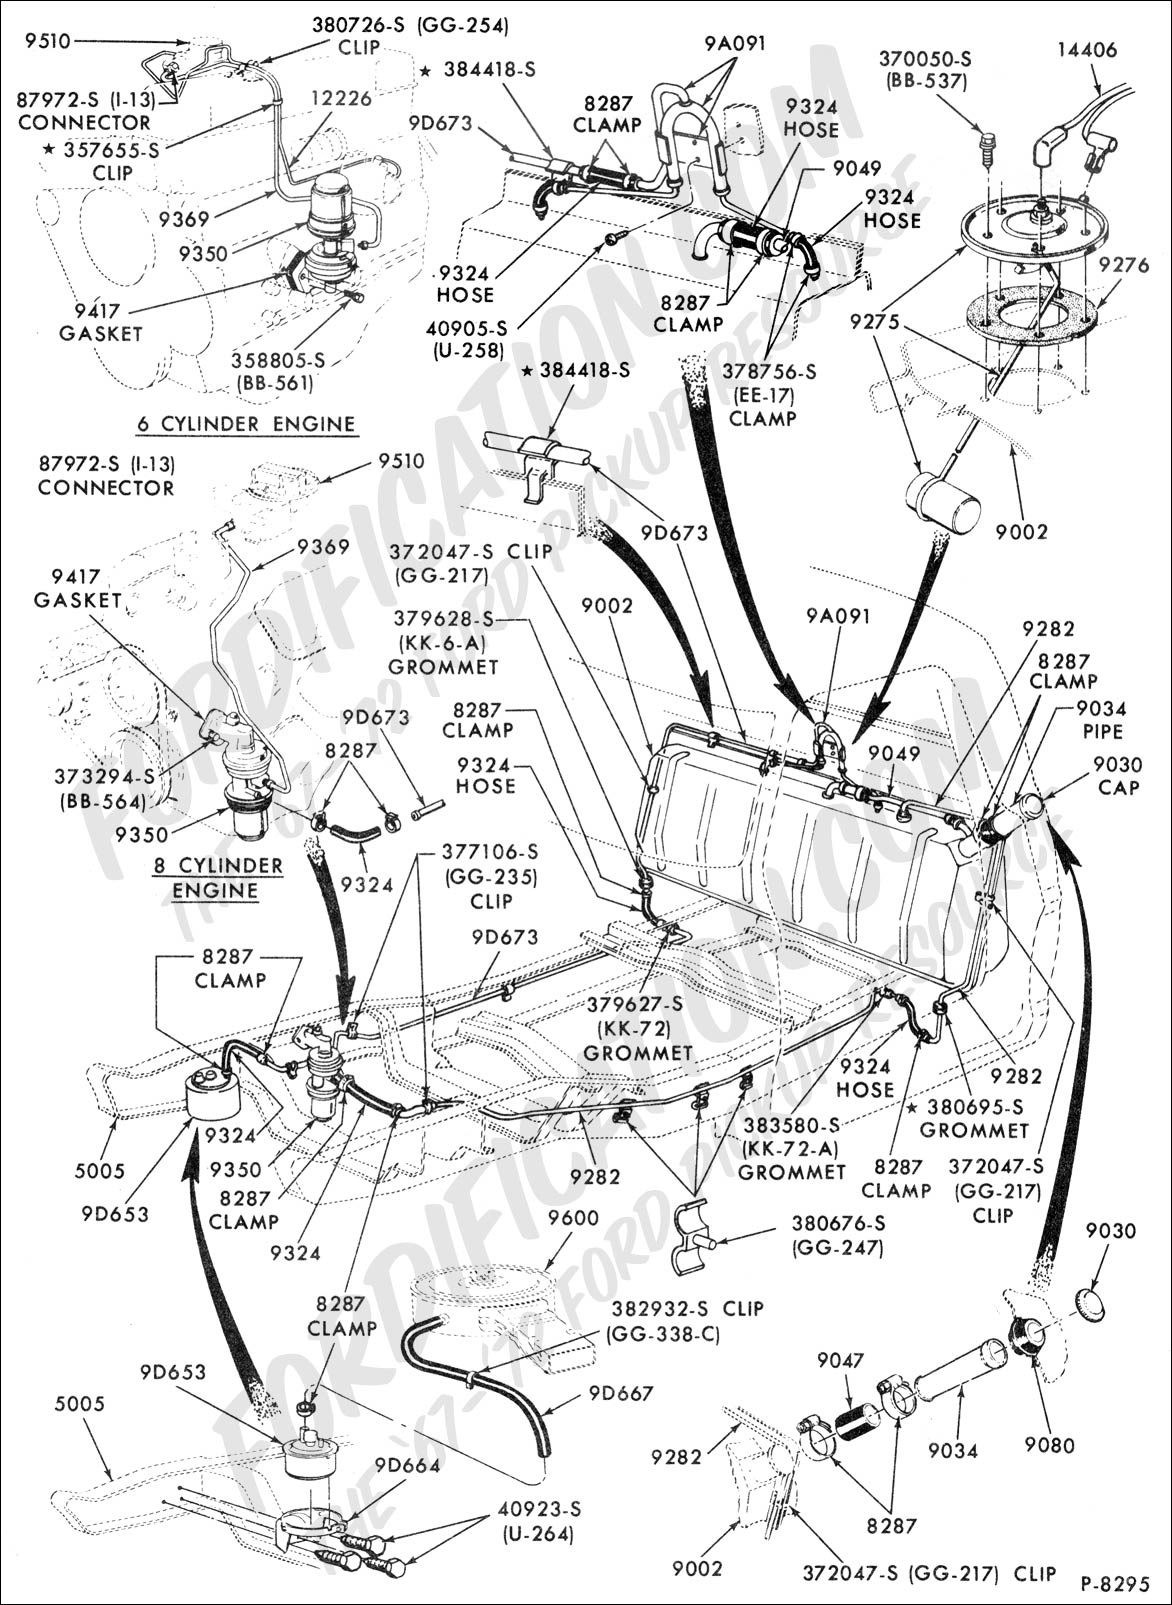 Schematics_e on 1990 Volvo 240 Wiring Diagram